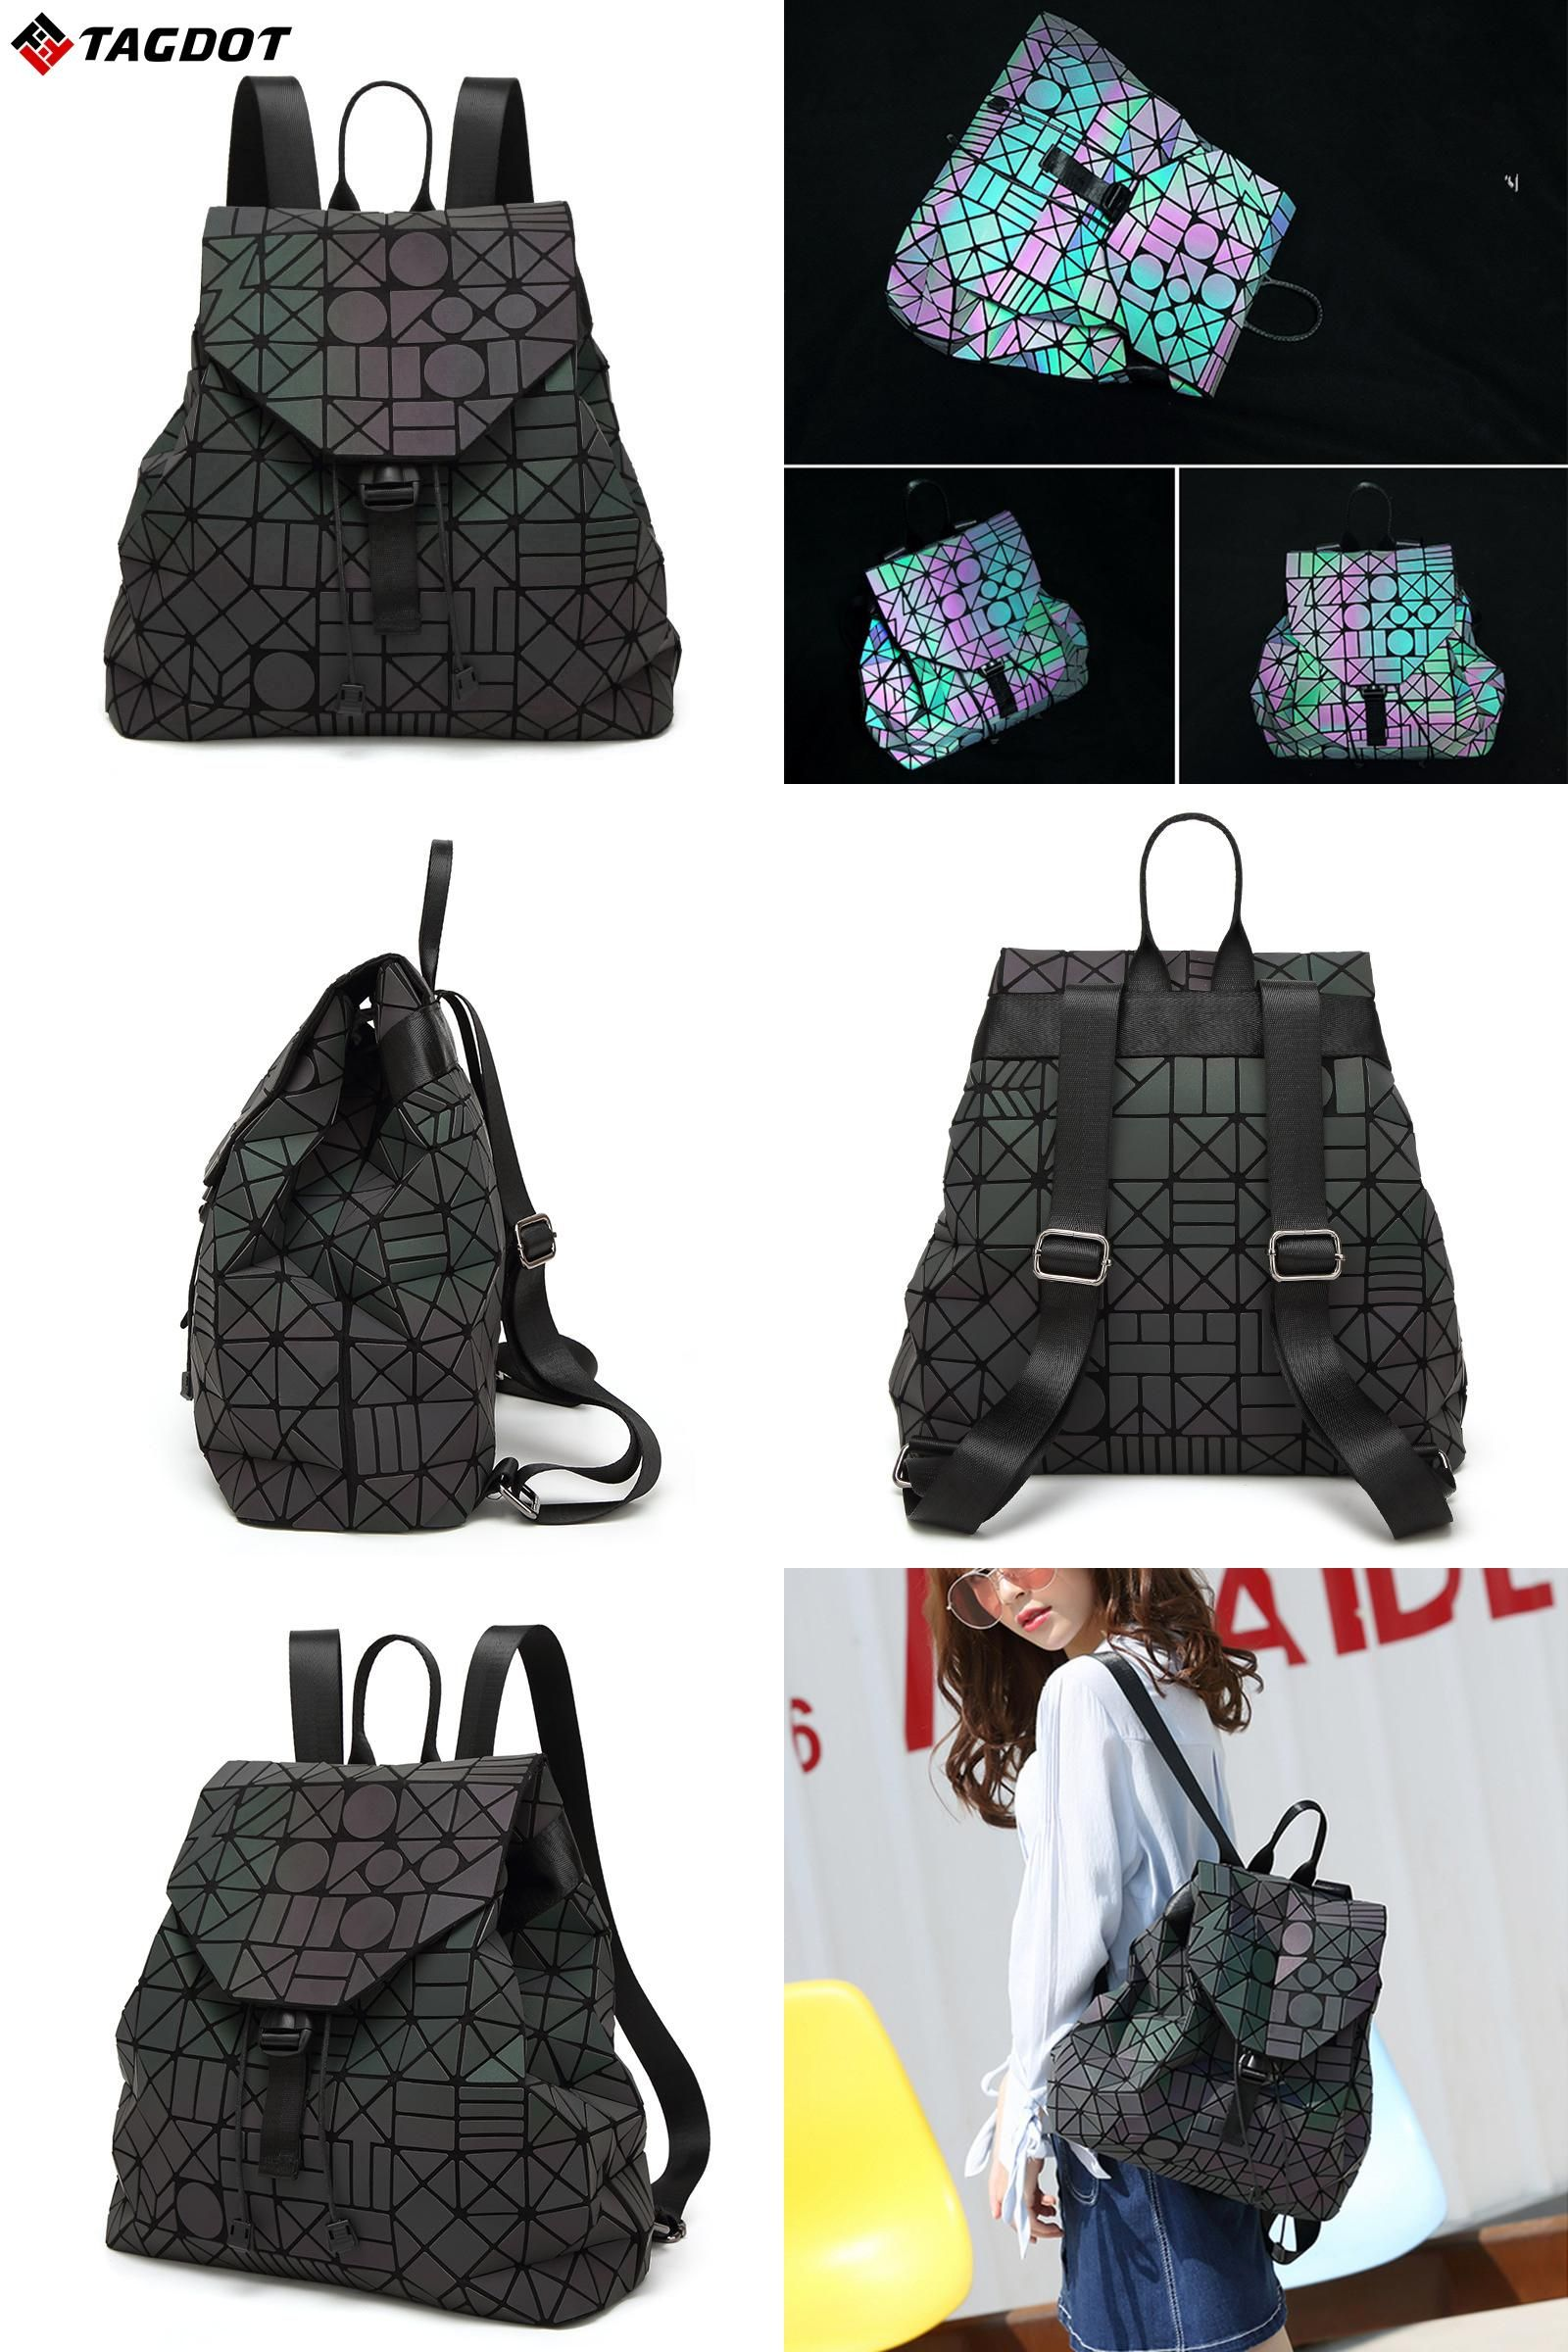 cord lighting. [Visit To Buy] New Fashion Lightning Luminous BaoBao Backpack Female Girl Daily Geometry Cord Lighting